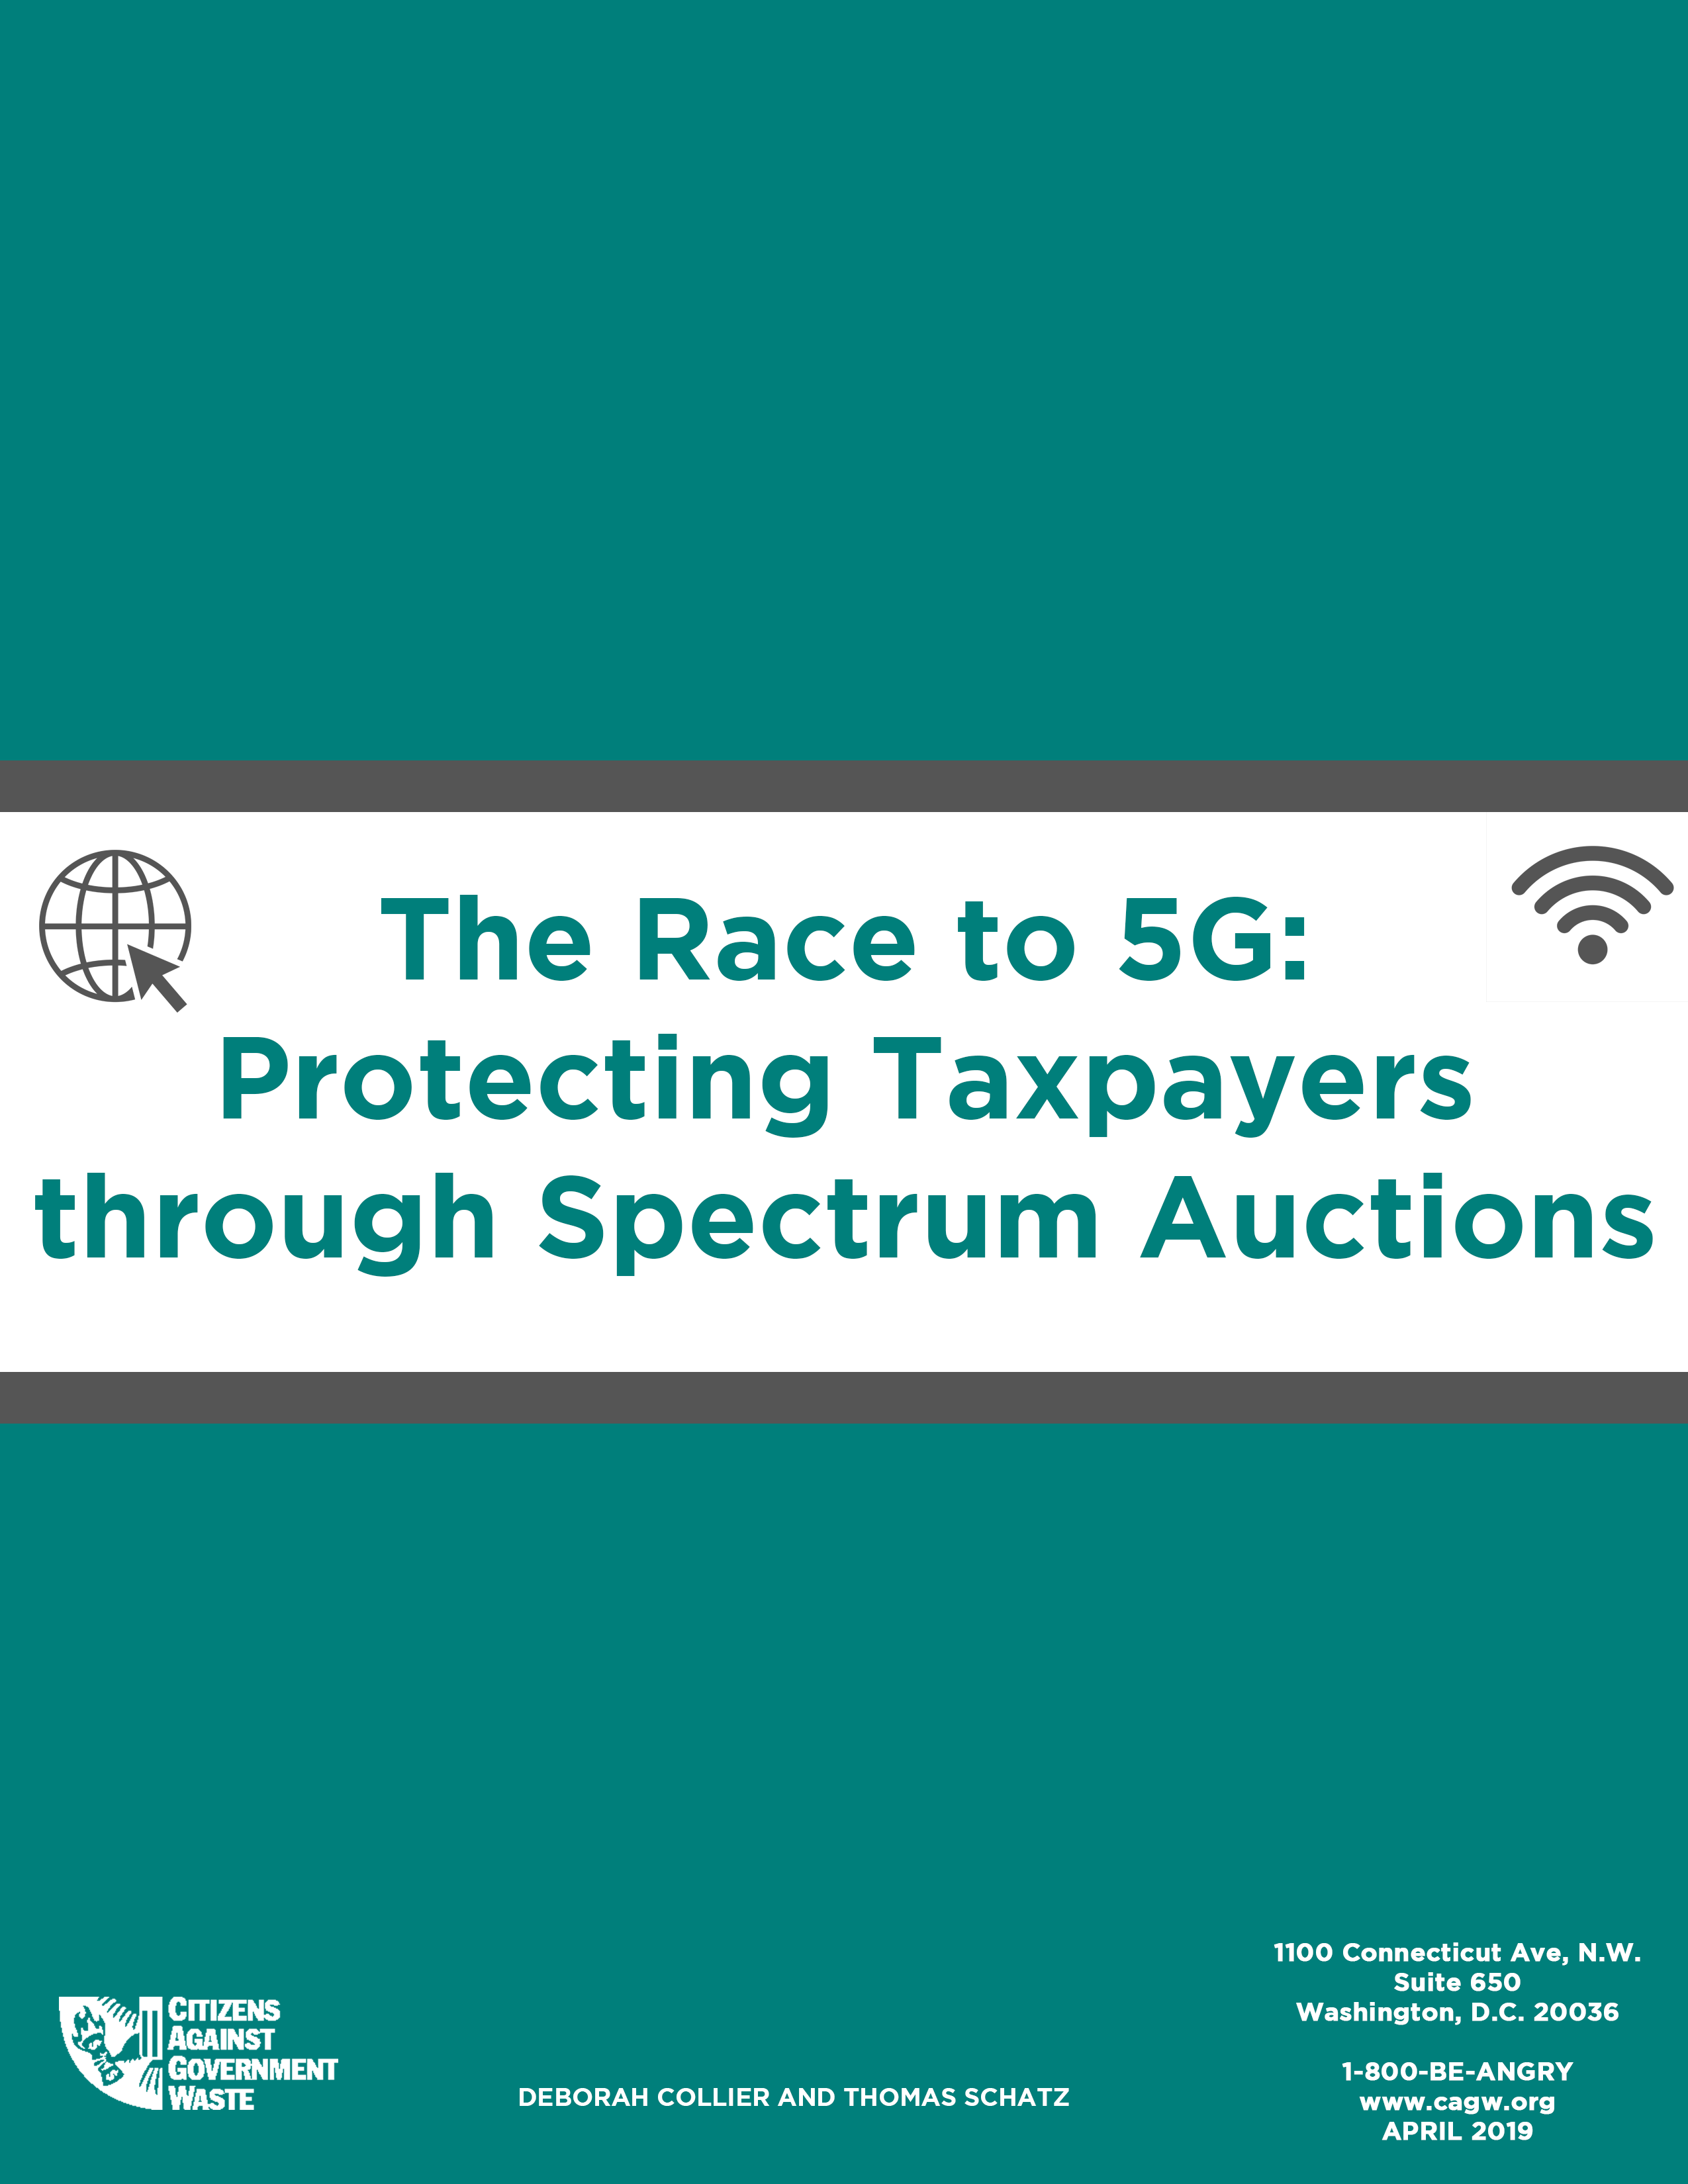 The Race to 5G: Protecting Taxpayers through Spectrum